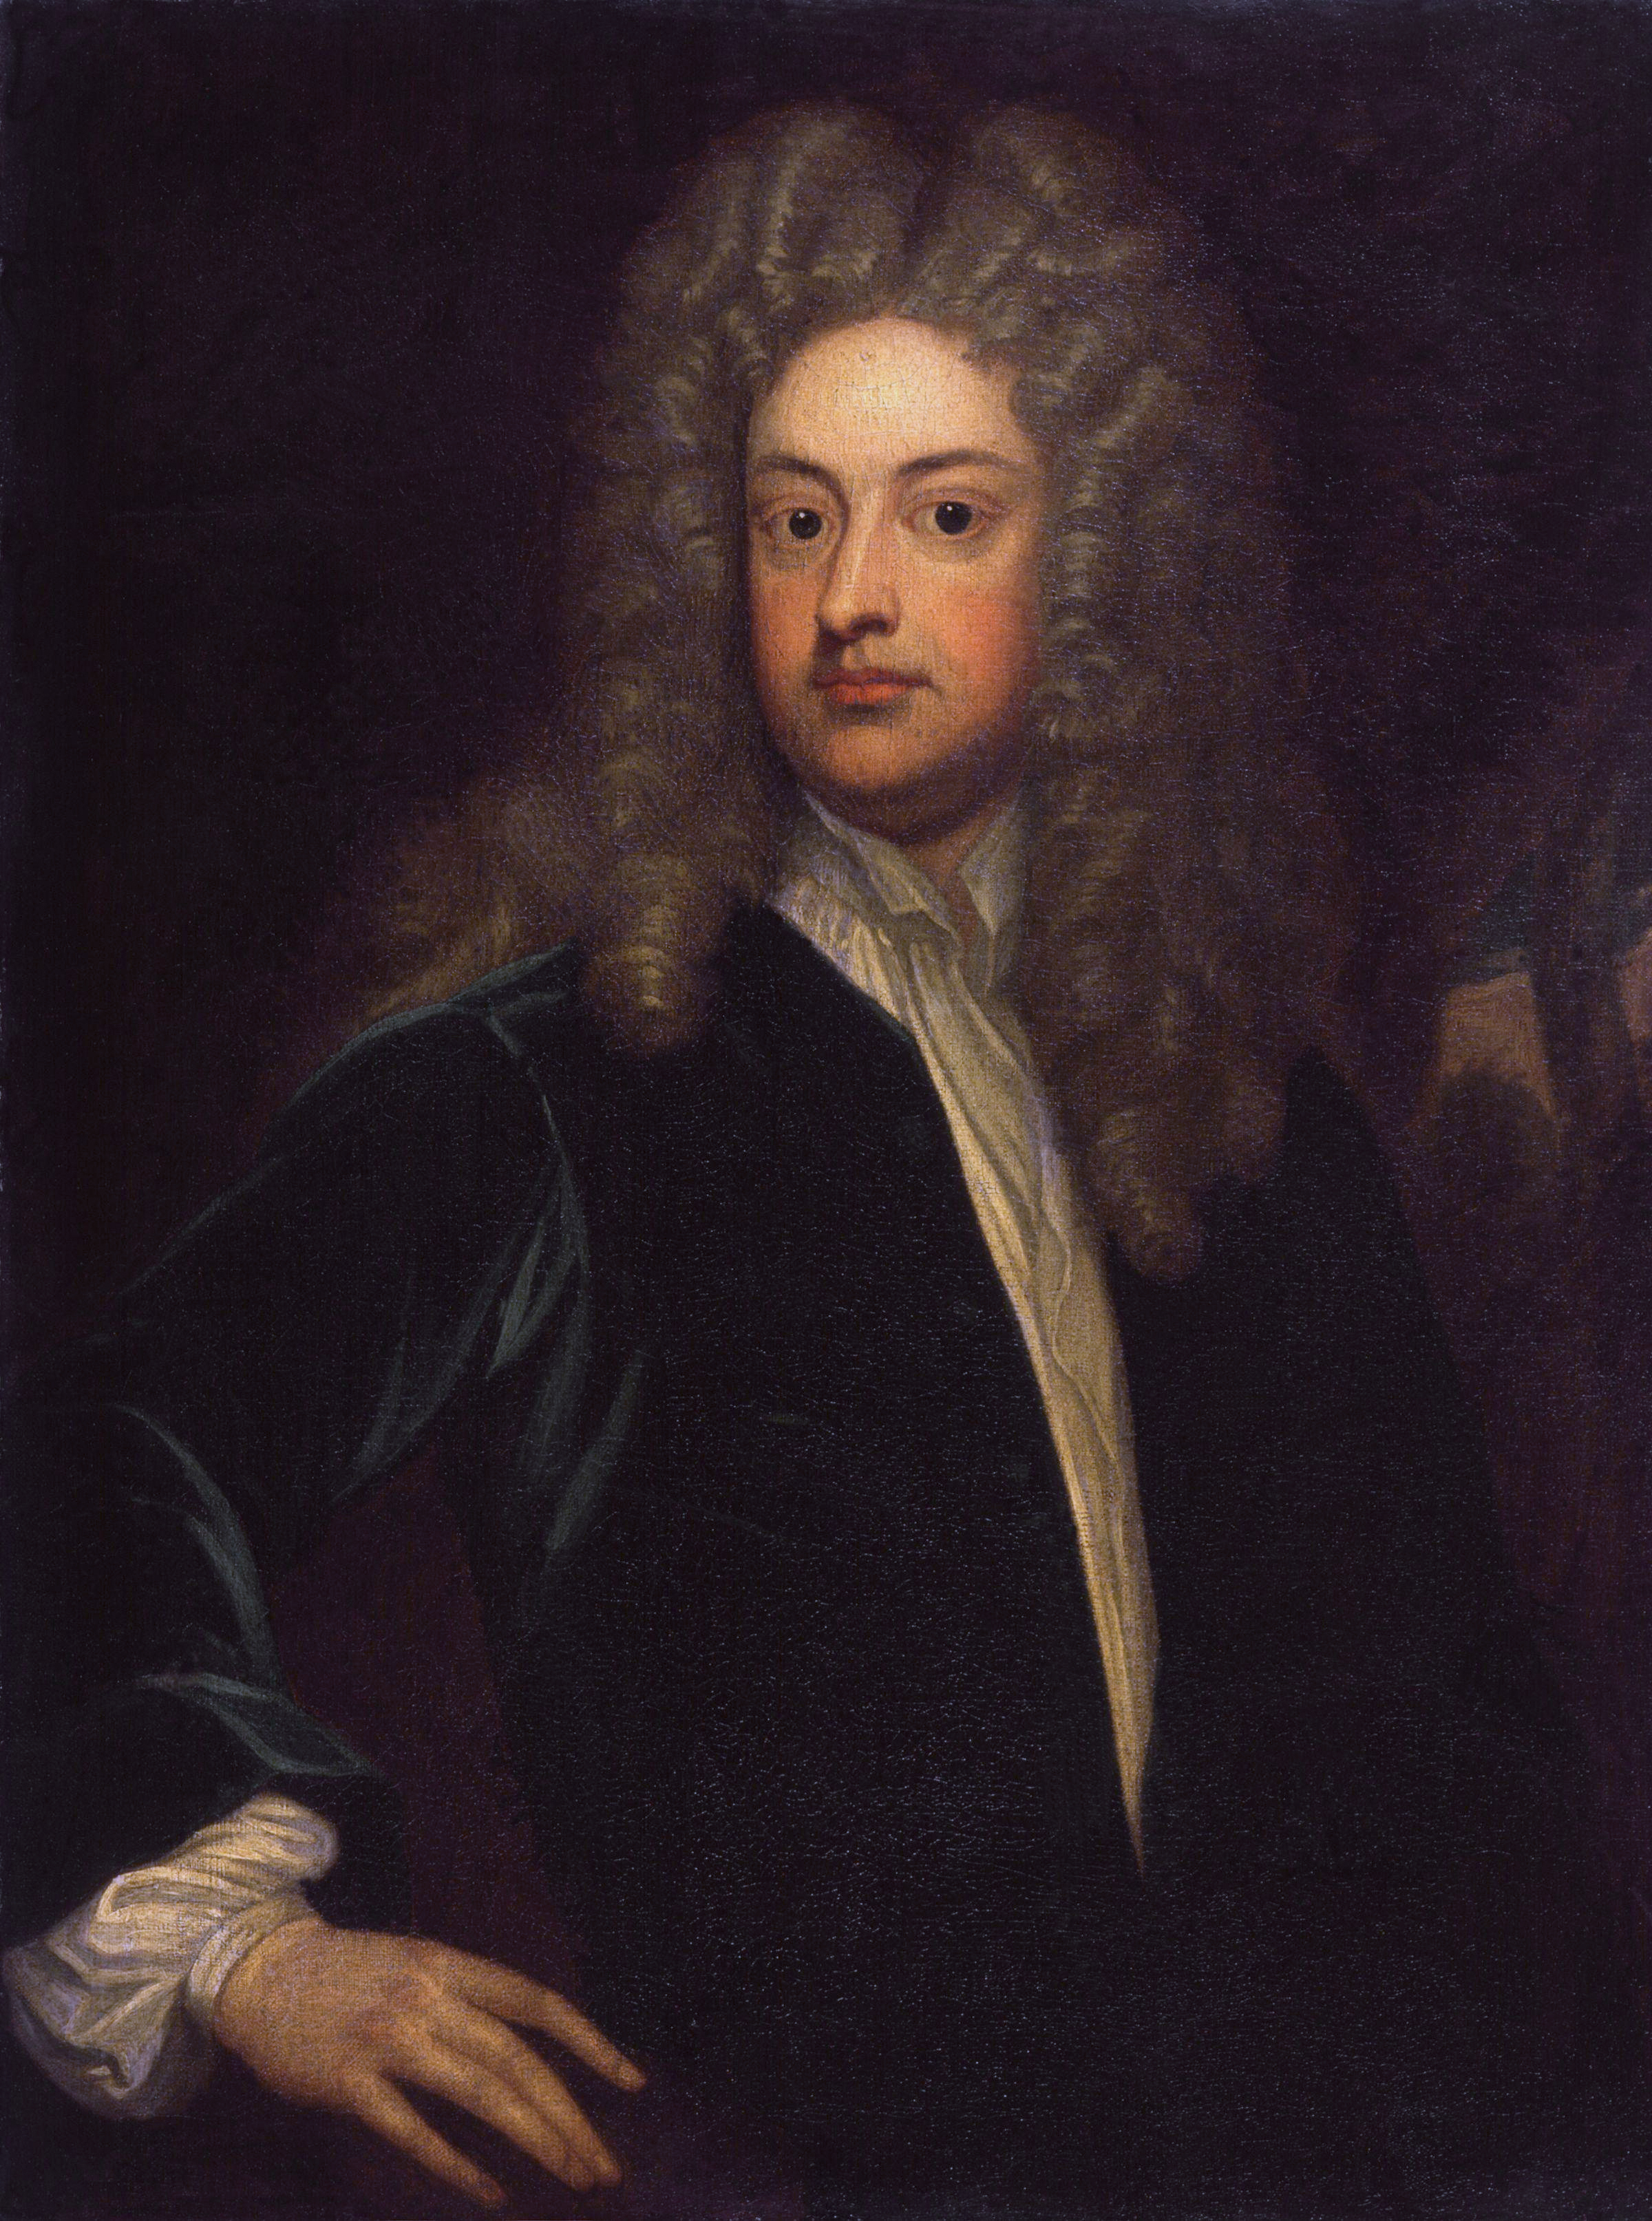 Portrait of Joseph Addison